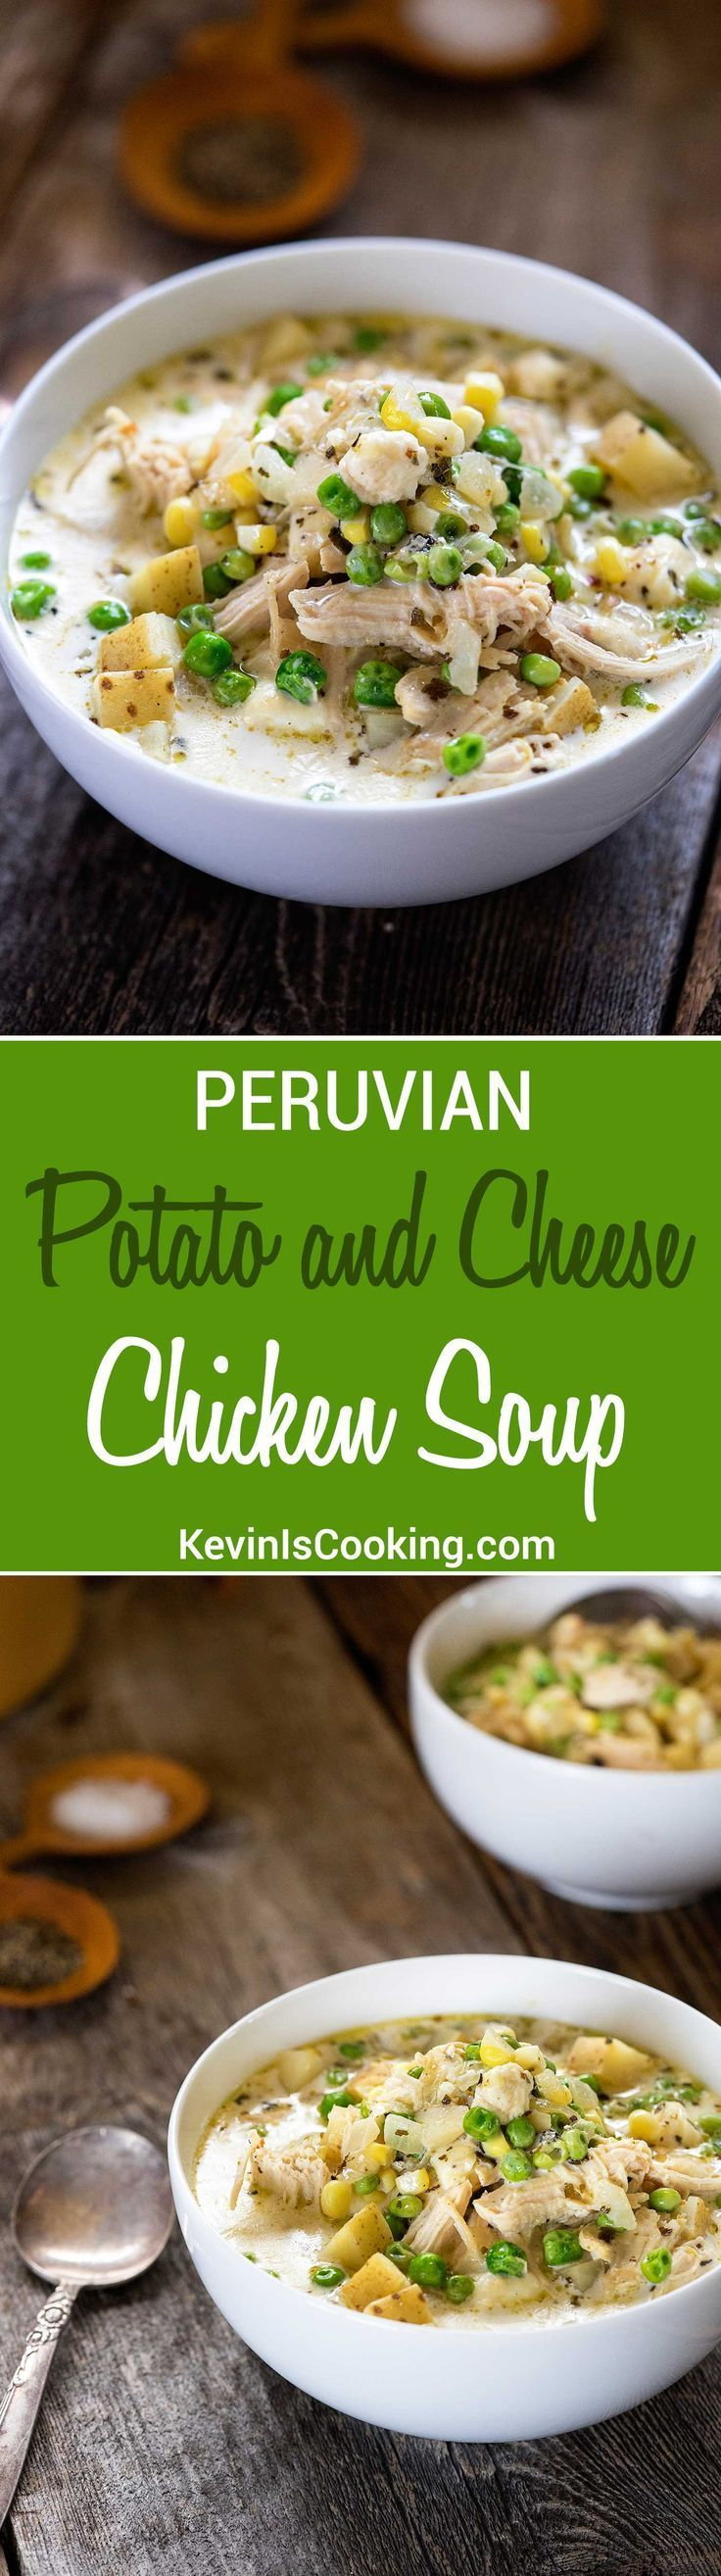 Peruvian Potato Cheese Soup with Chicken | Easy to make soup will have you coming back for seconds with all the fresh vegetables and melting cheese!